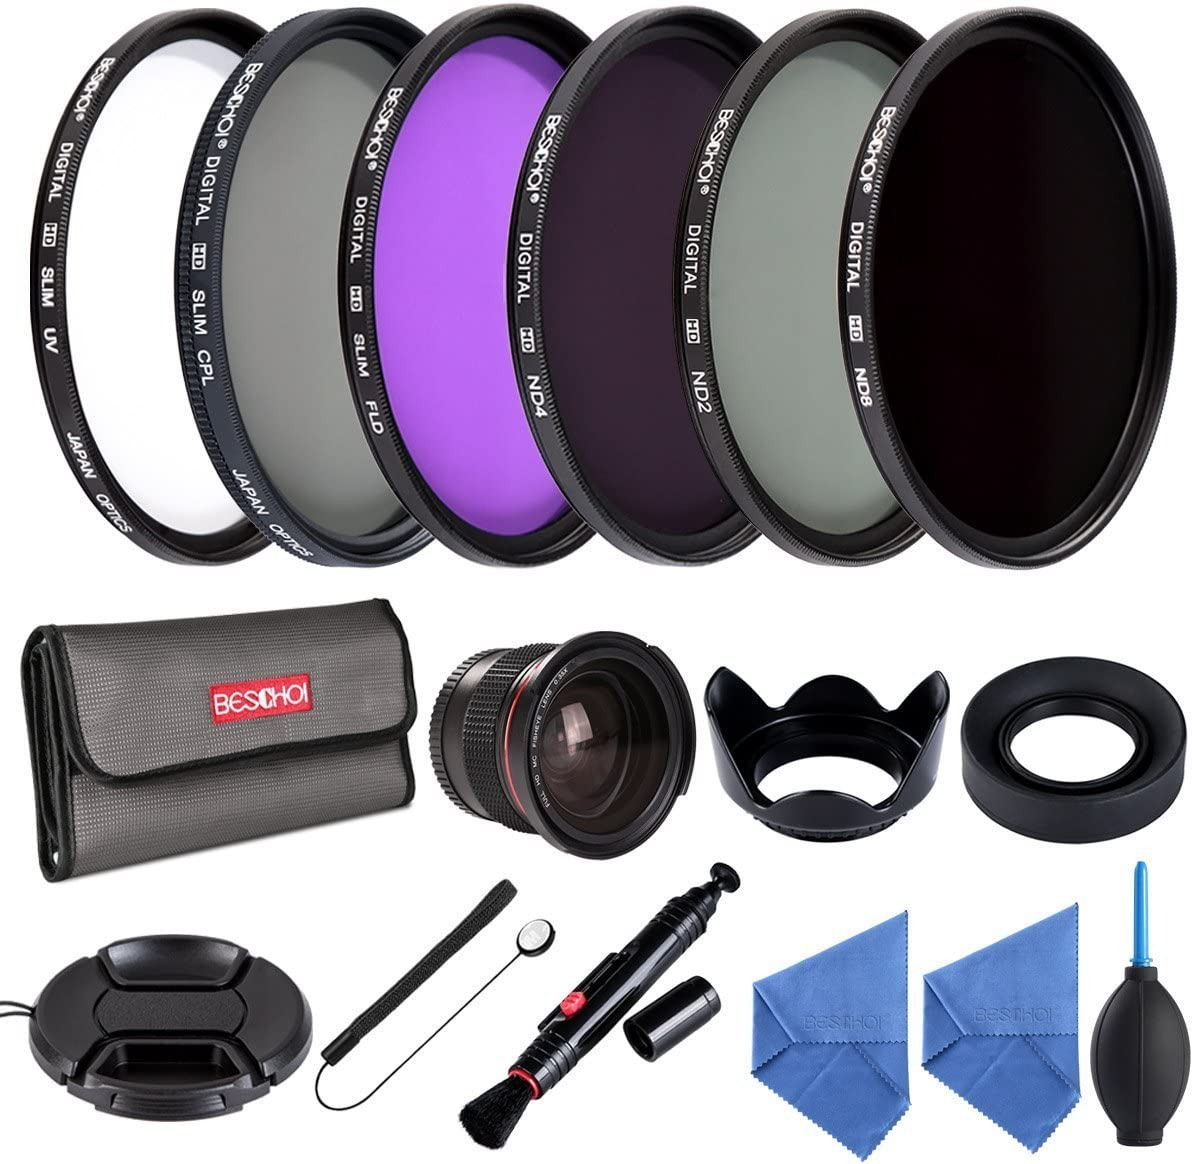 Beschoi 52mm UV Protection Lens Filters Kit UV CPL FLD ND2 ND4 ND8 Slim Lens Filter Set 52mm 0.35x HD Wide Angle Fisheye with Amazing Kit Acessories